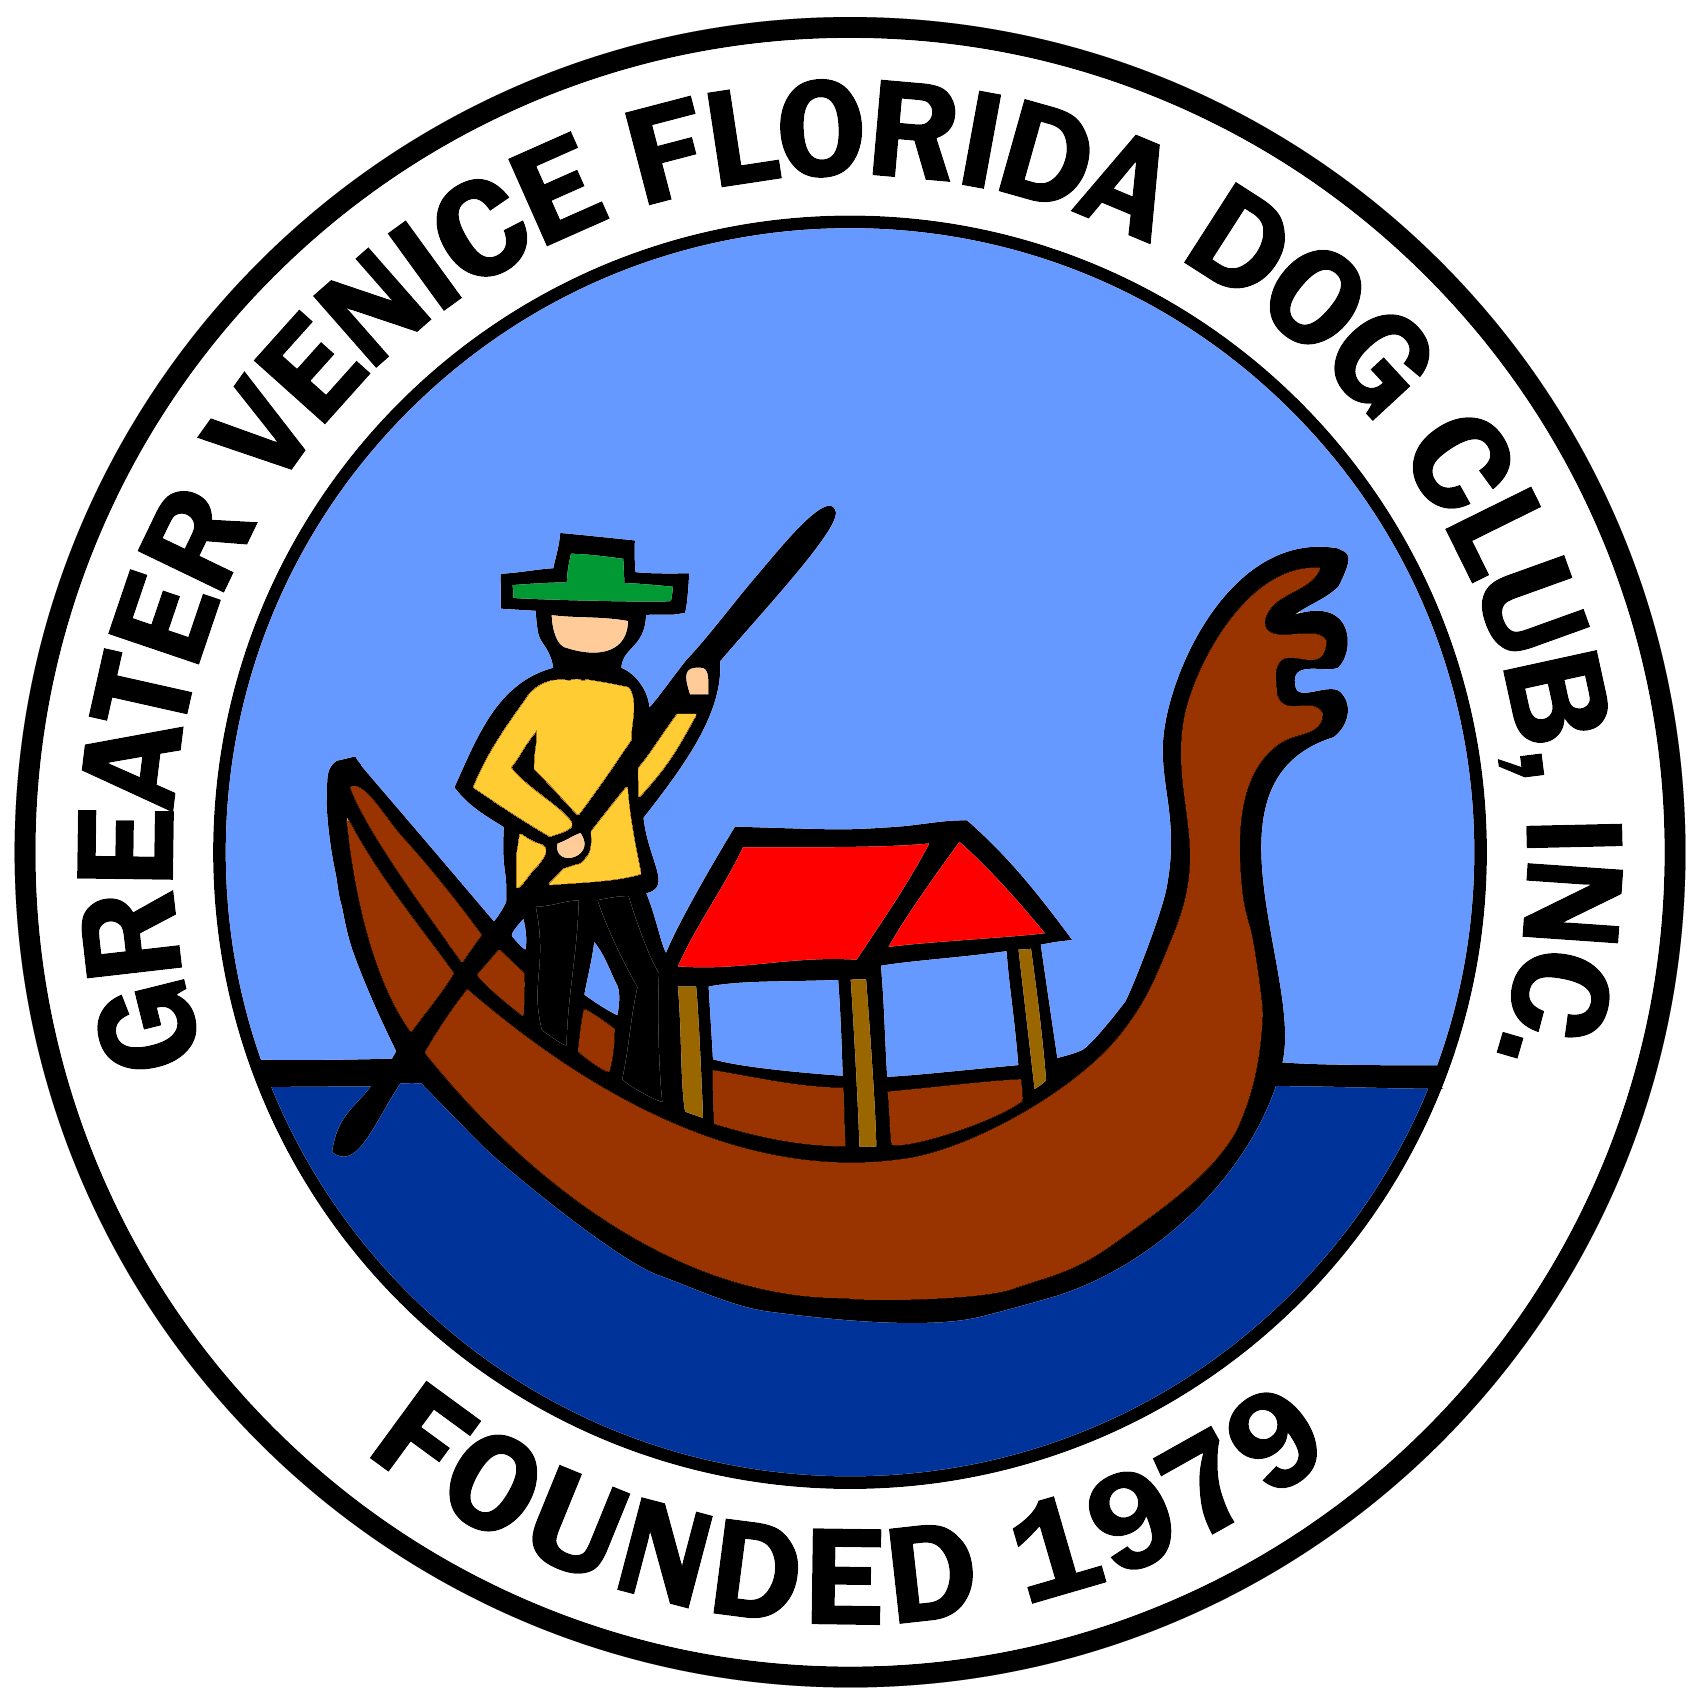 Obedience logocolored. Student clipart obedient